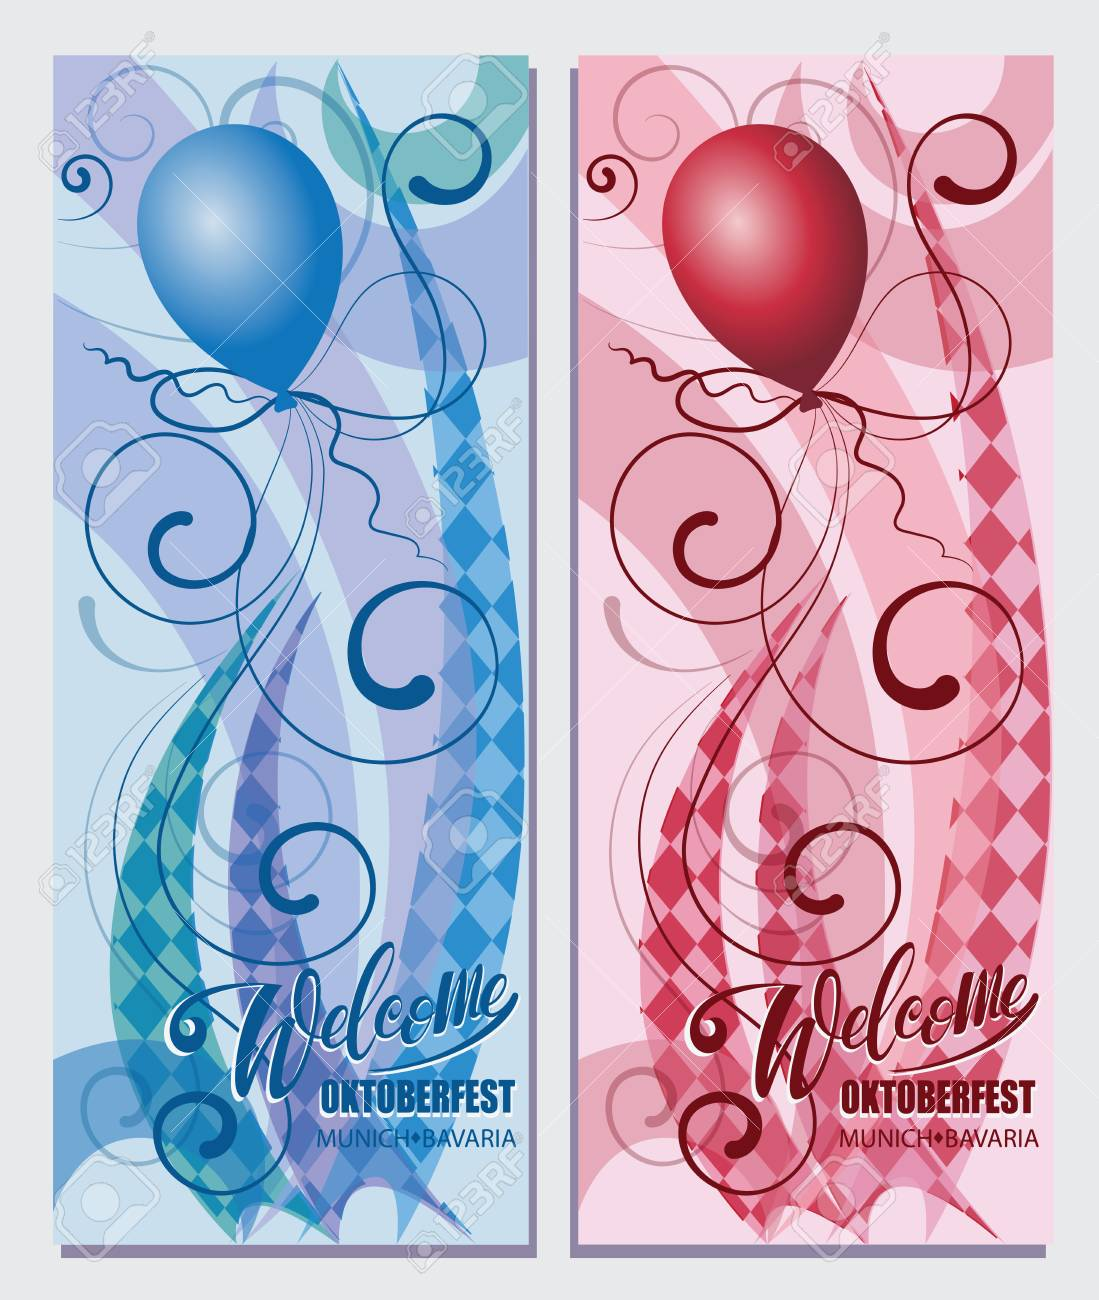 Balloons welcome oktoberfest munich bayern beautiful greeting welcome oktoberfest munich bayern beautiful greeting card with calligraphy red m4hsunfo